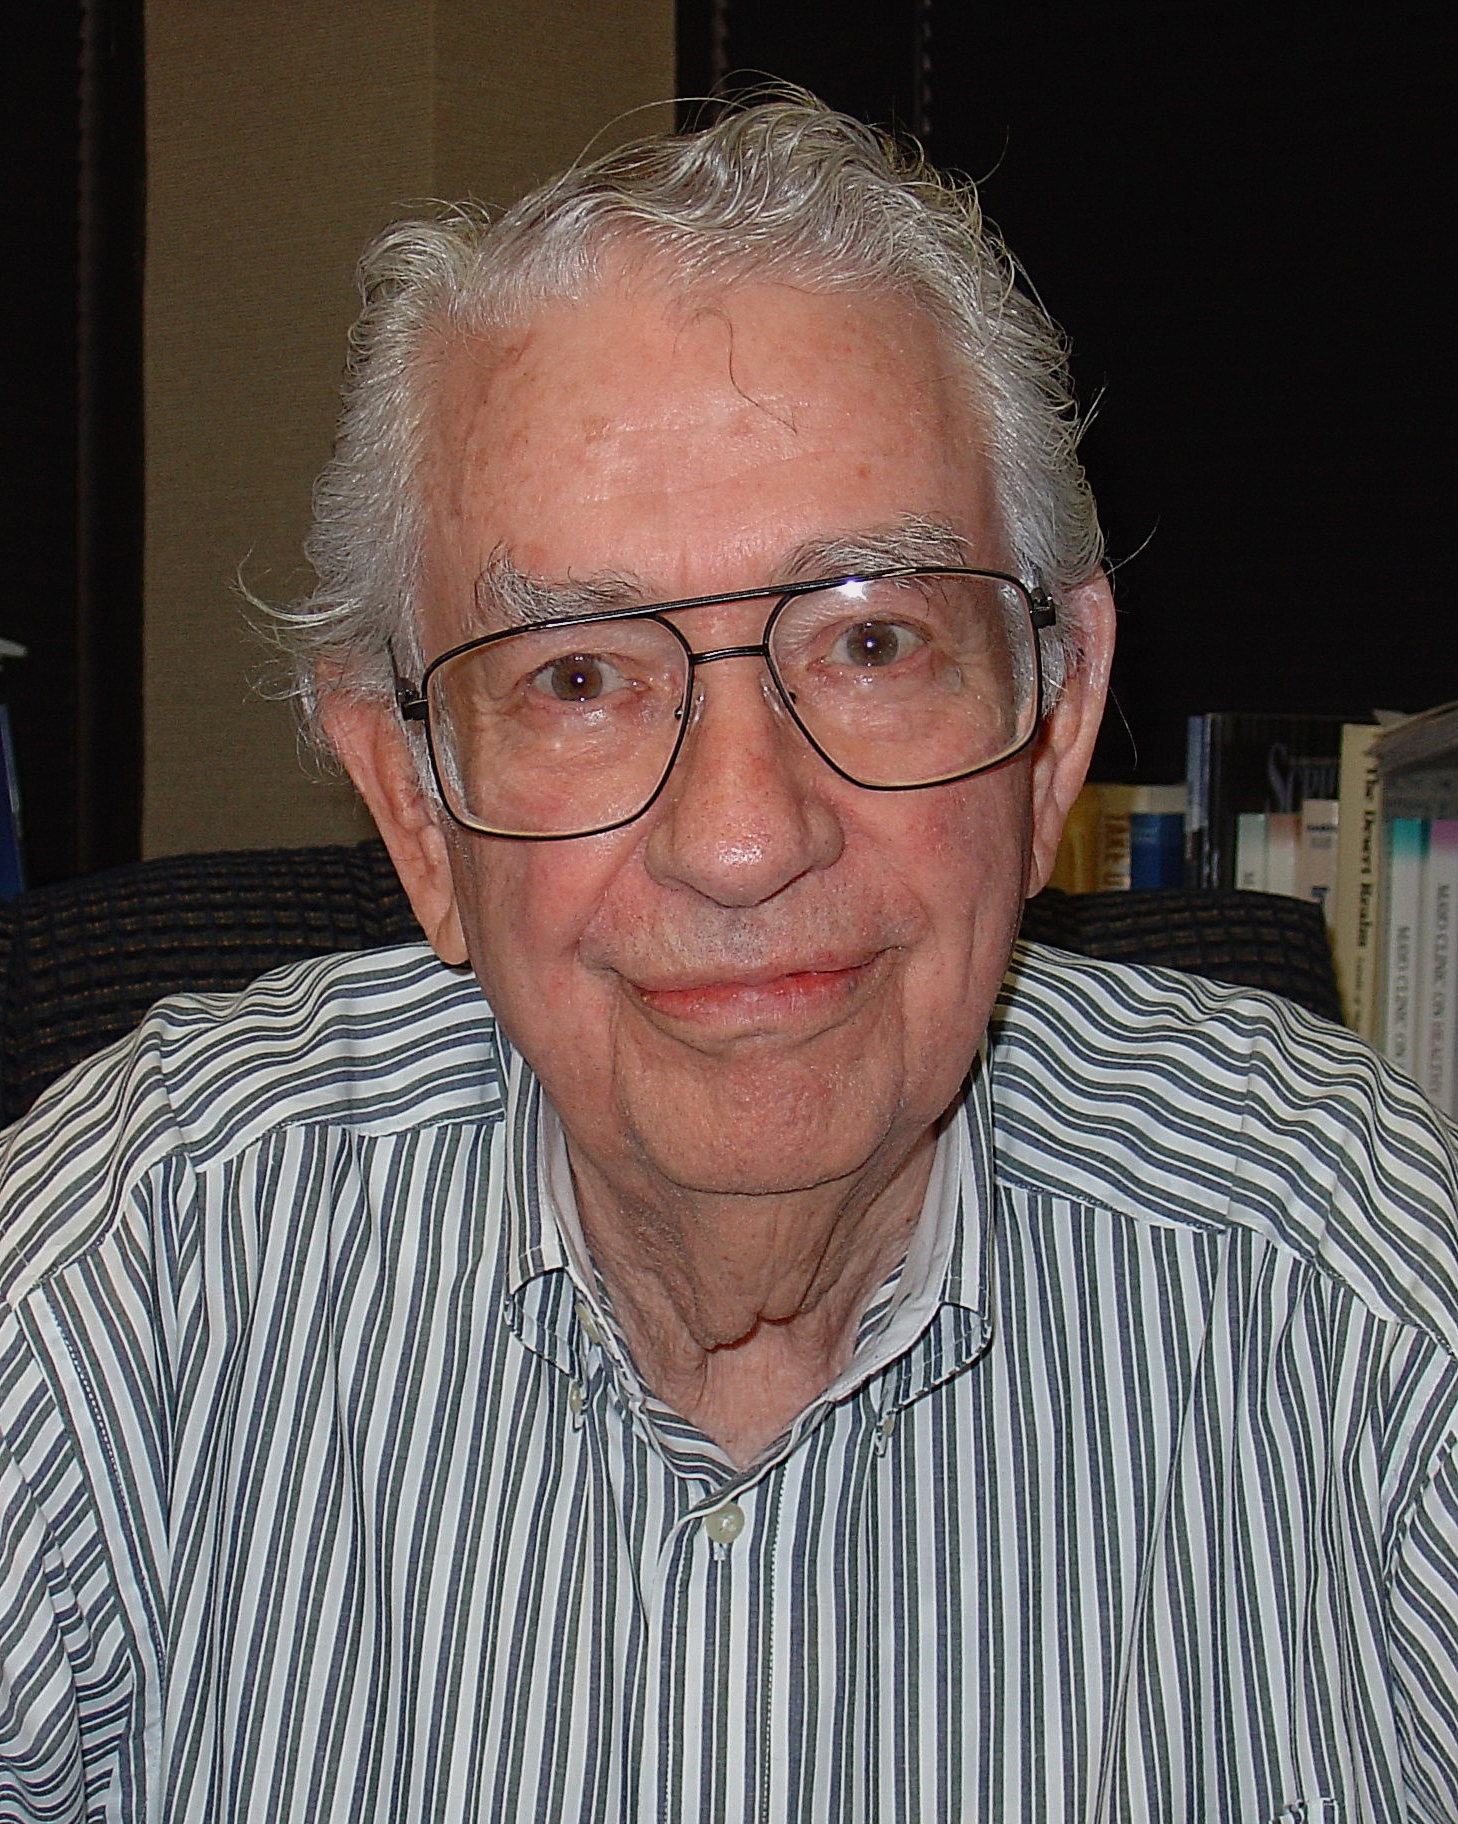 Russ Norman, MD Seventh president of the Southwestern Chapter (term ending 1963)